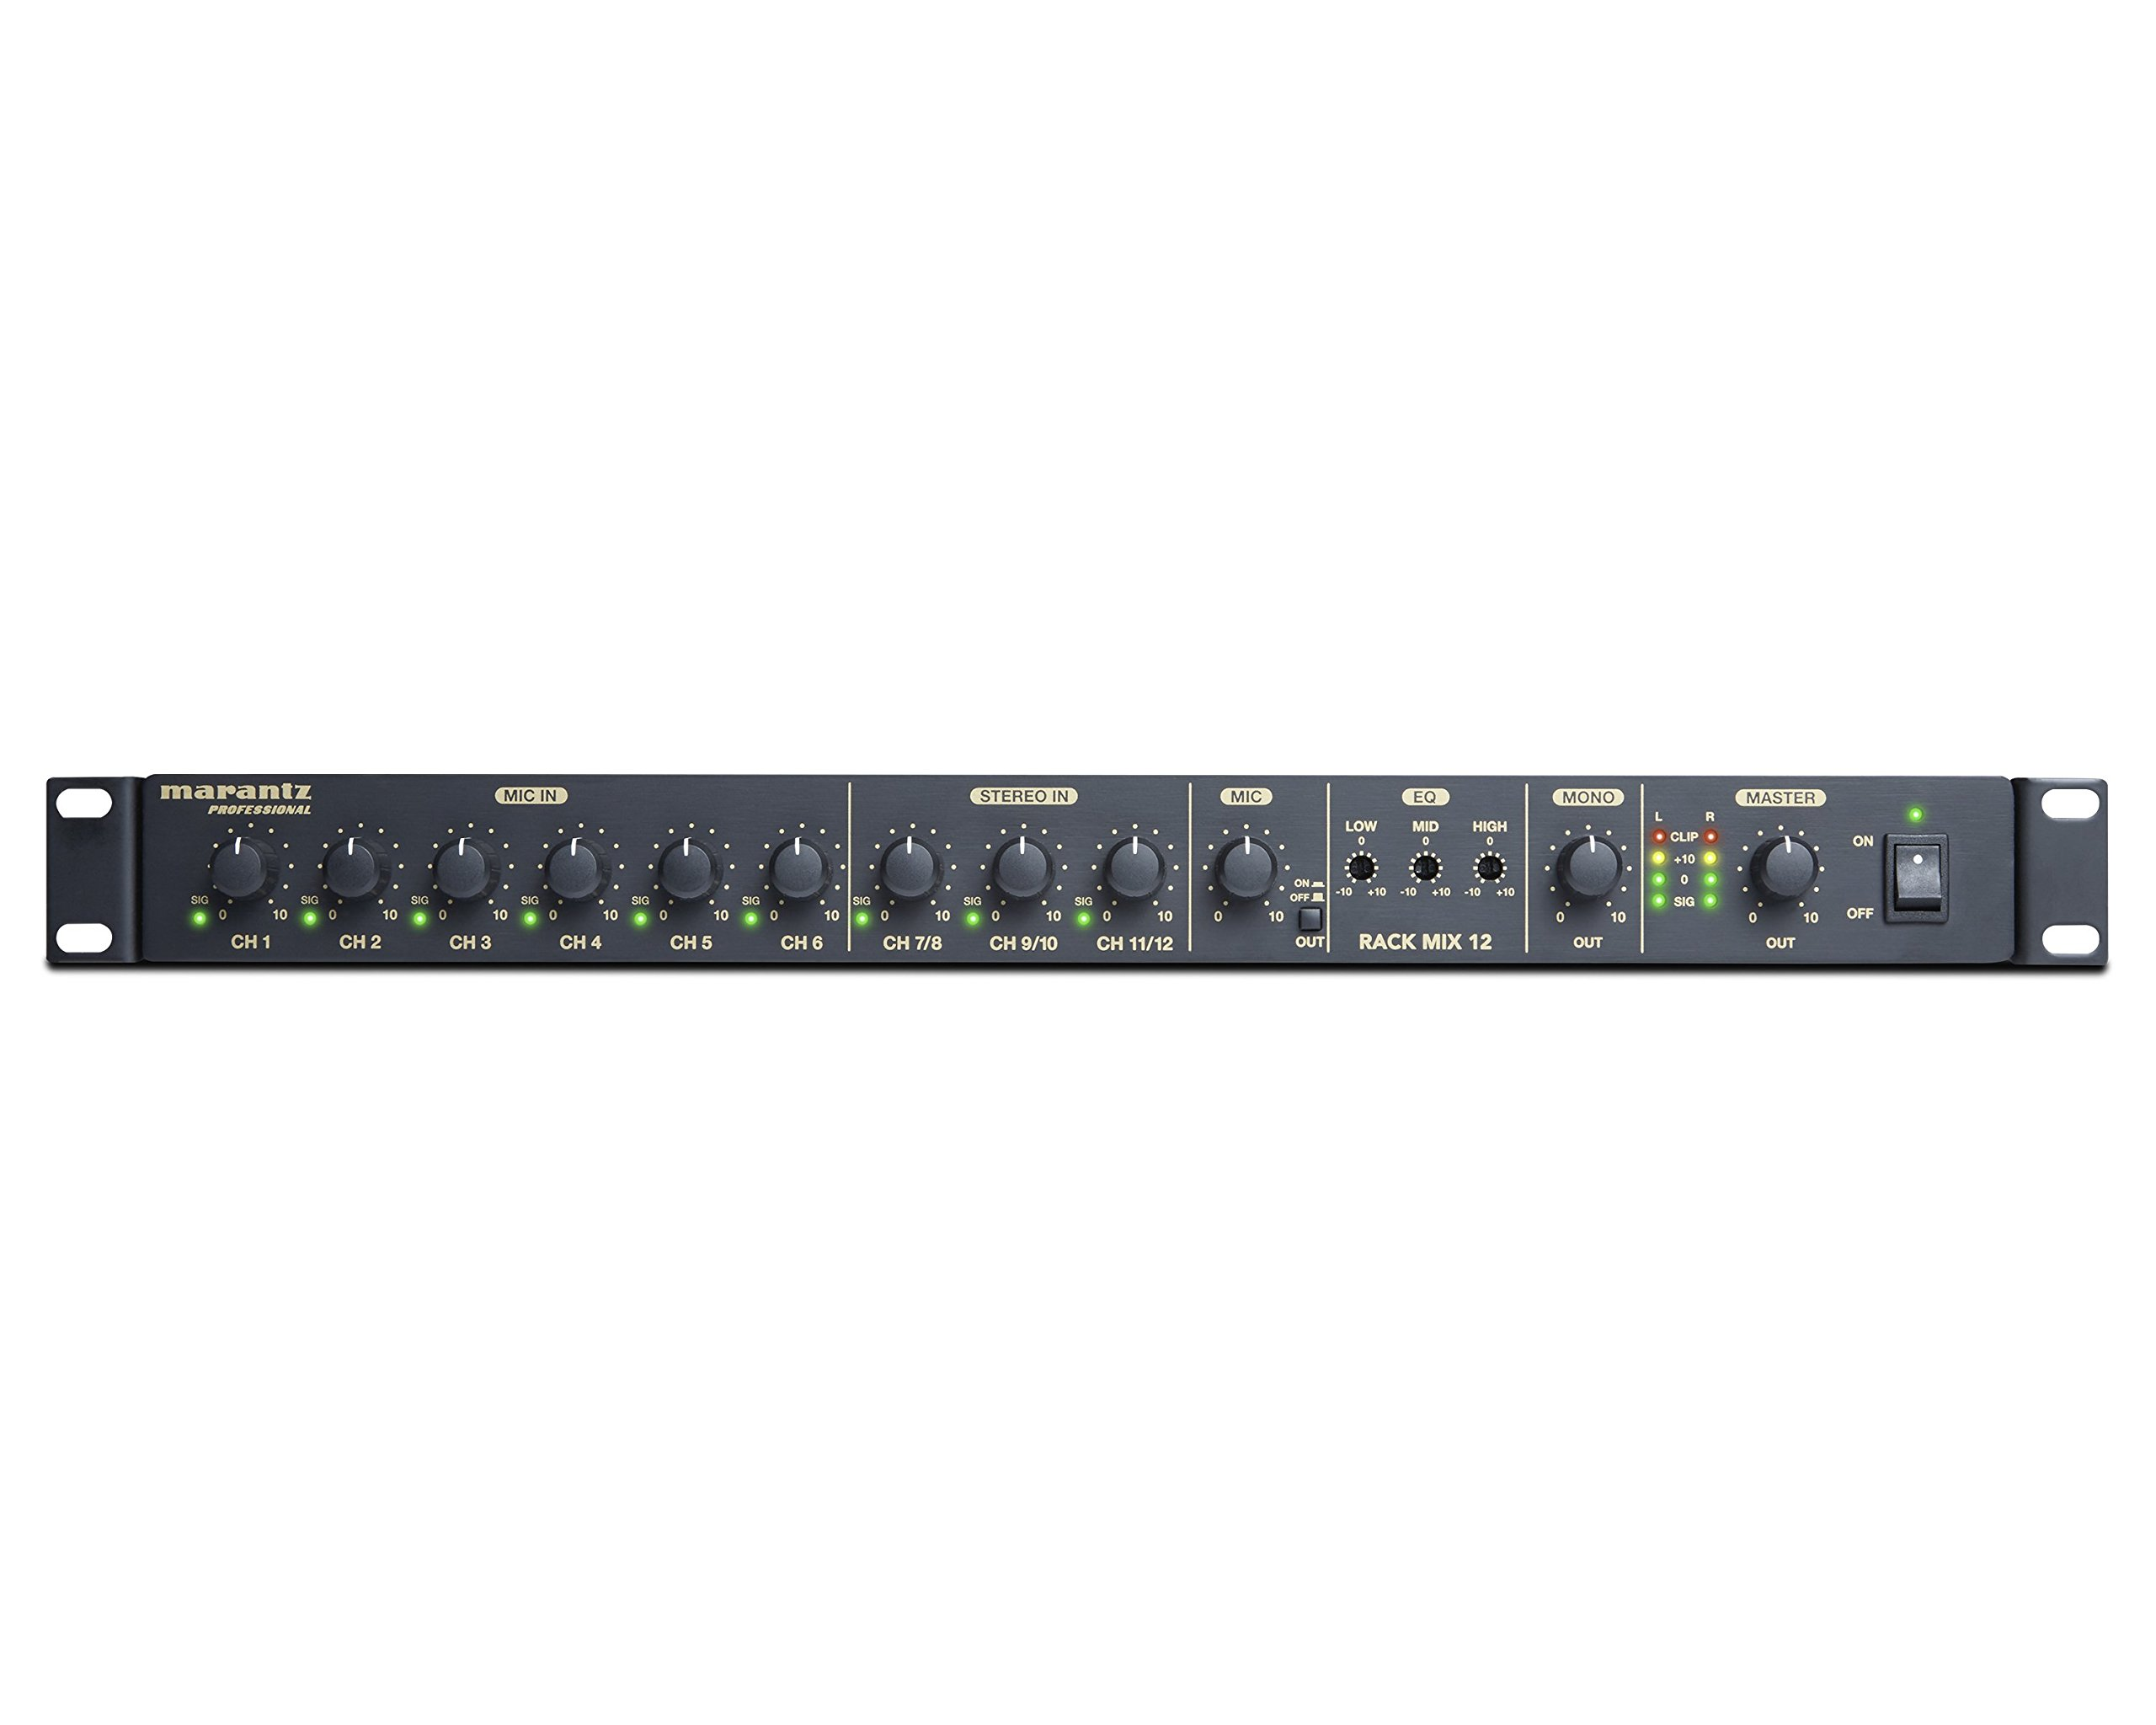 Marantz Professional Rack Mix 12 | Slim 12-Channel Line Audio Mixer with Priority Control